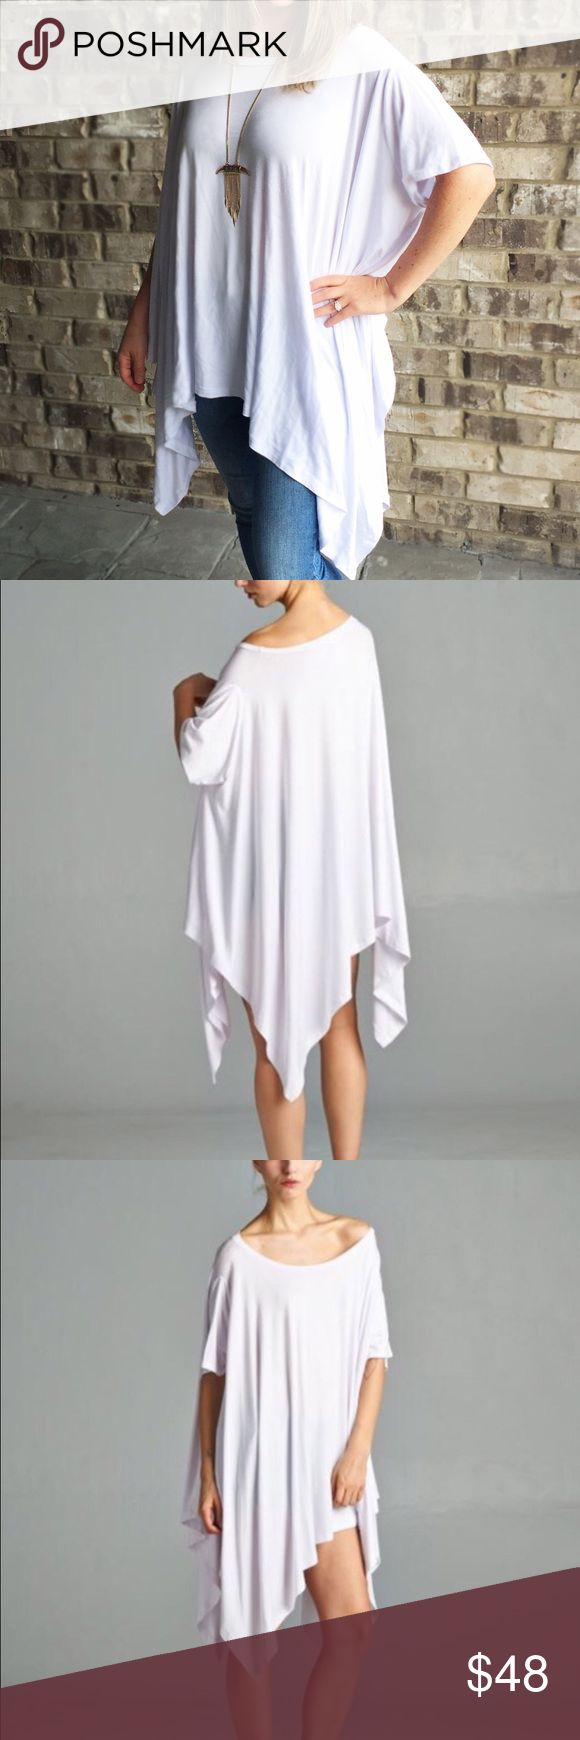 Draped White Tunic ONLY 2 left!!!  Super cute and comfy white tunic top.  Medium weight.  One size fits most.  Made in the USA.  Great for anyone but a must mention because I am a nursing mom - this is the best shirt for a nursing mom who wants to be fashionable.  The shirt acts as your cover too 😉👍 ⚡️💃BUNDLE TO SAVE💃⚡️ surprise gift included 🎁 April Spirit Tops Tunics